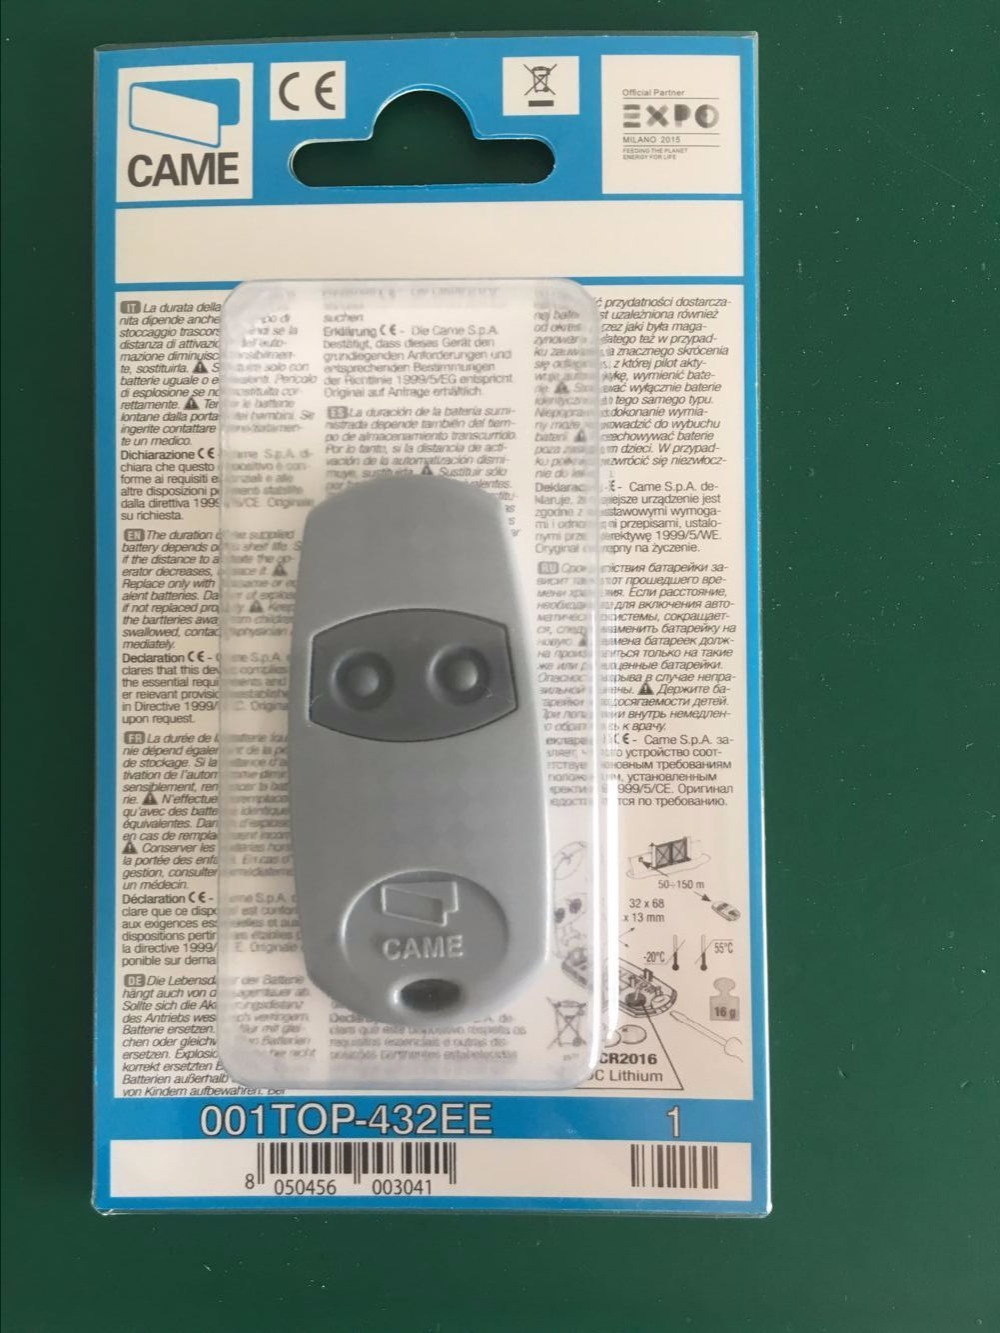 CAME TOP432EE TOP432NA TOP432EV Garage Door/Gate Remote Control Replacement/Duplicator 433.92mhz fixe code new nova centurion blue gate garage remote control replacement